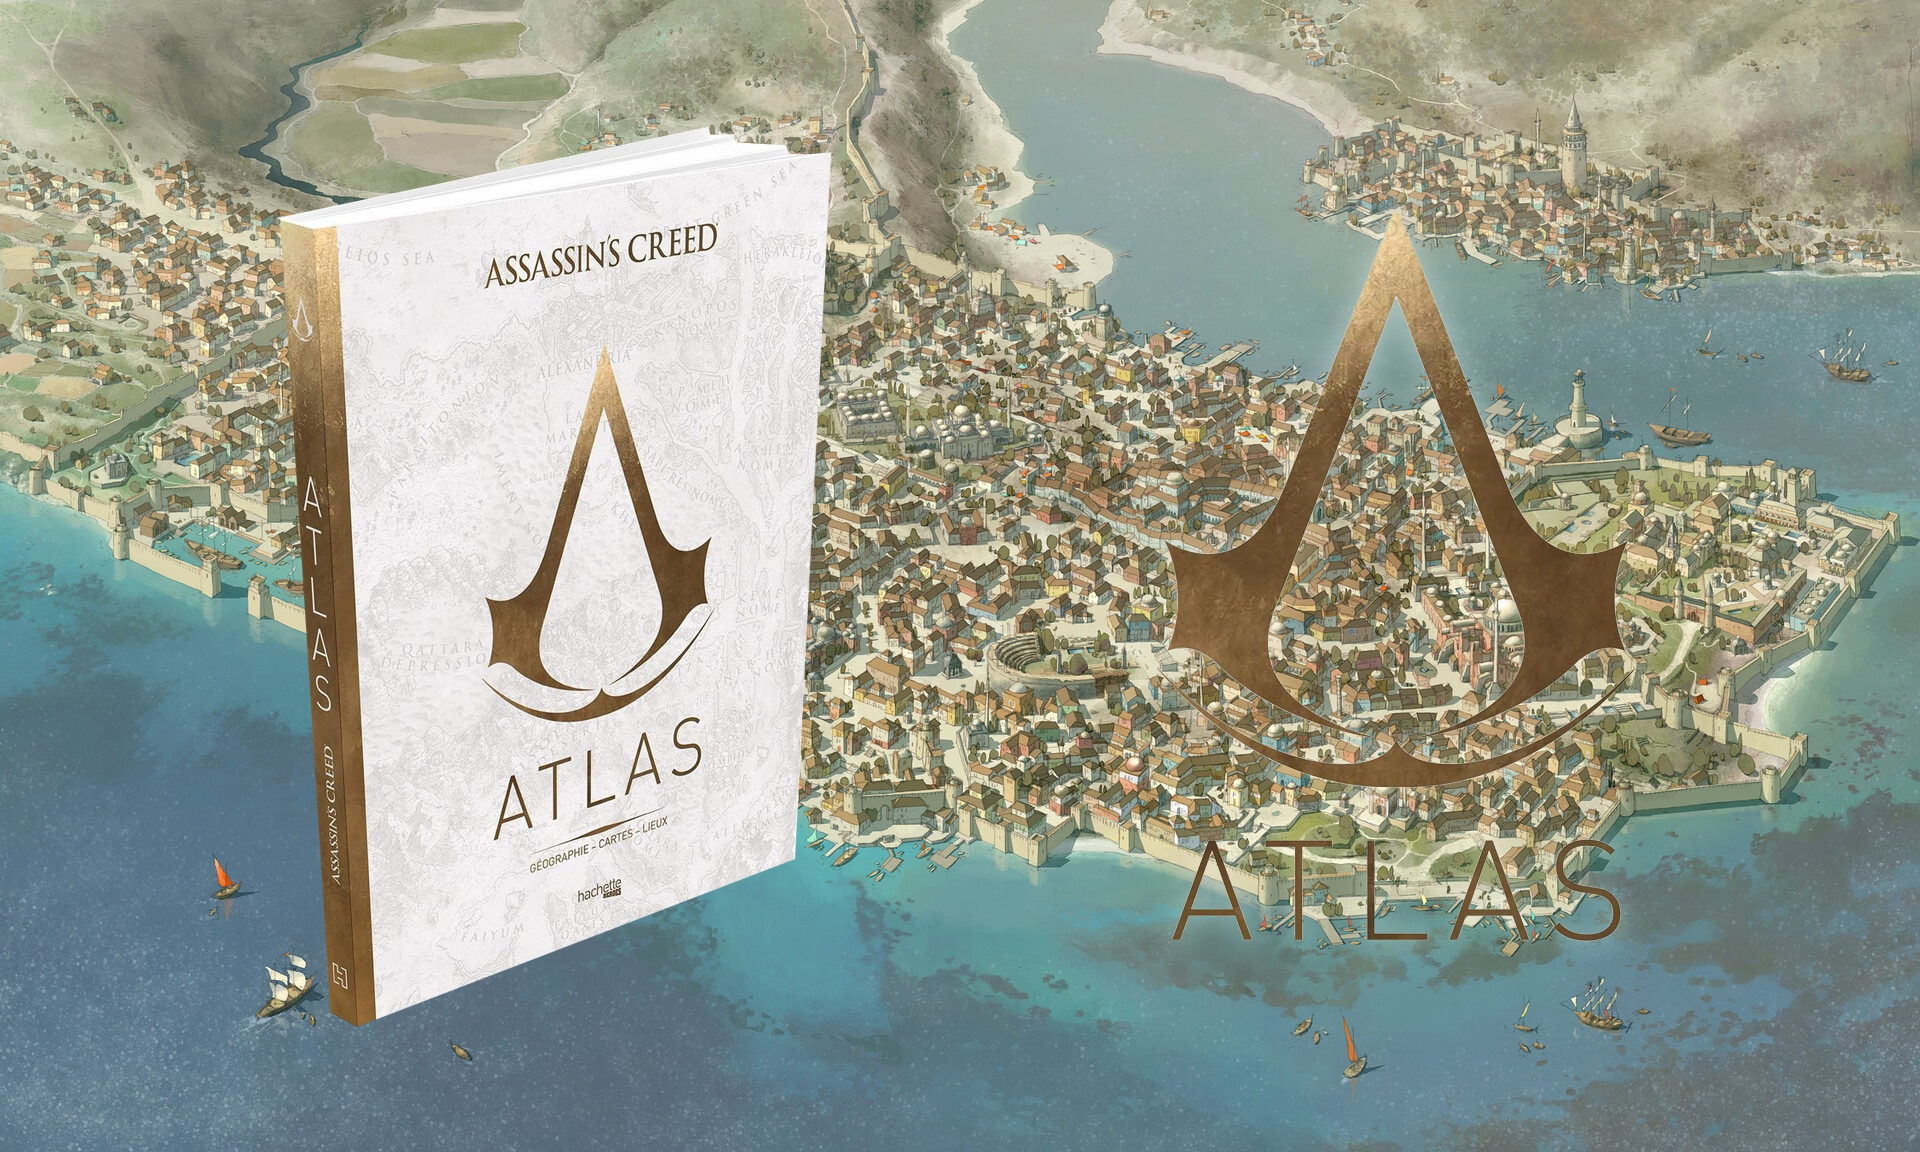 Assassin's Creed: Atlas Book Out Now!